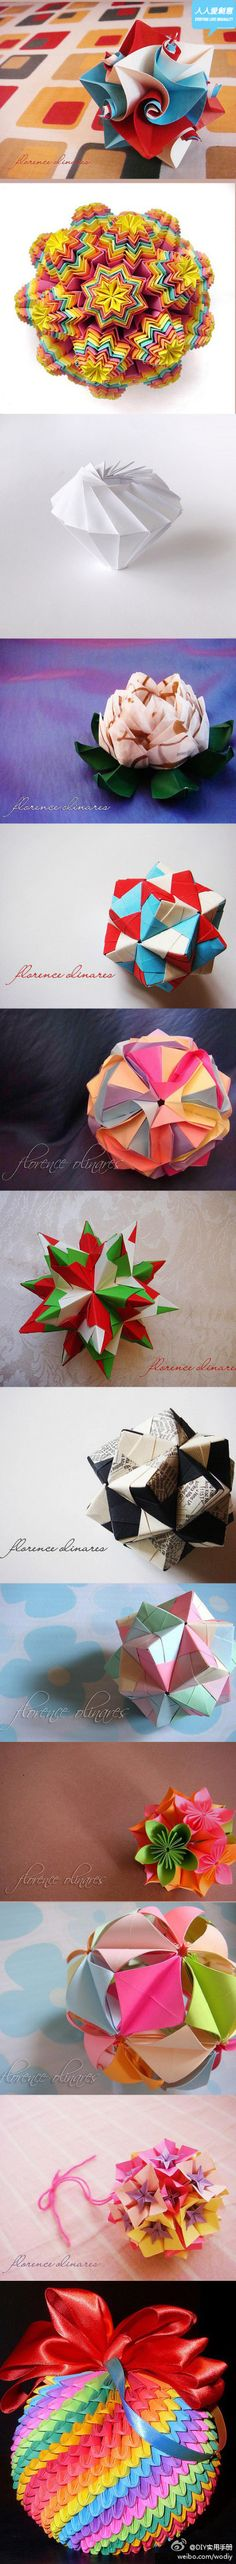 paper folding - modular origami - love this stuff!